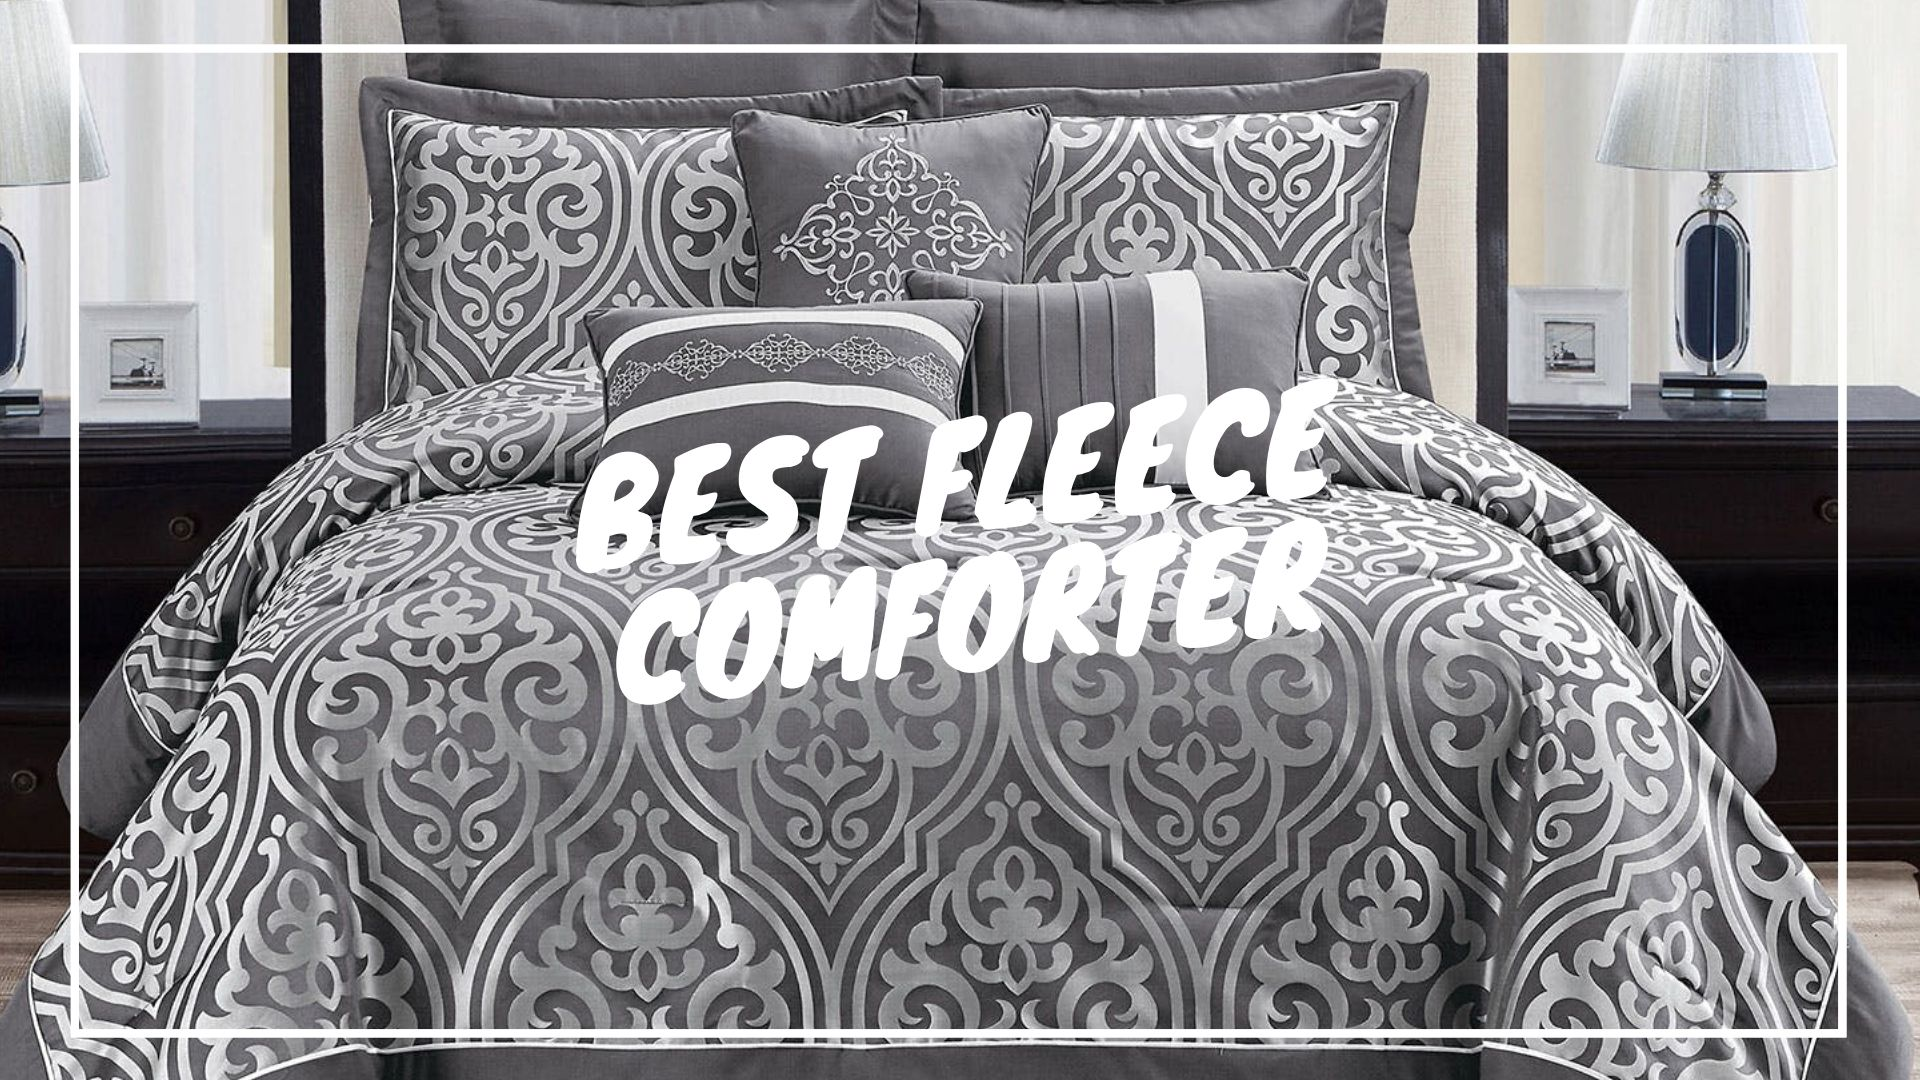 Best Fleece Comforter